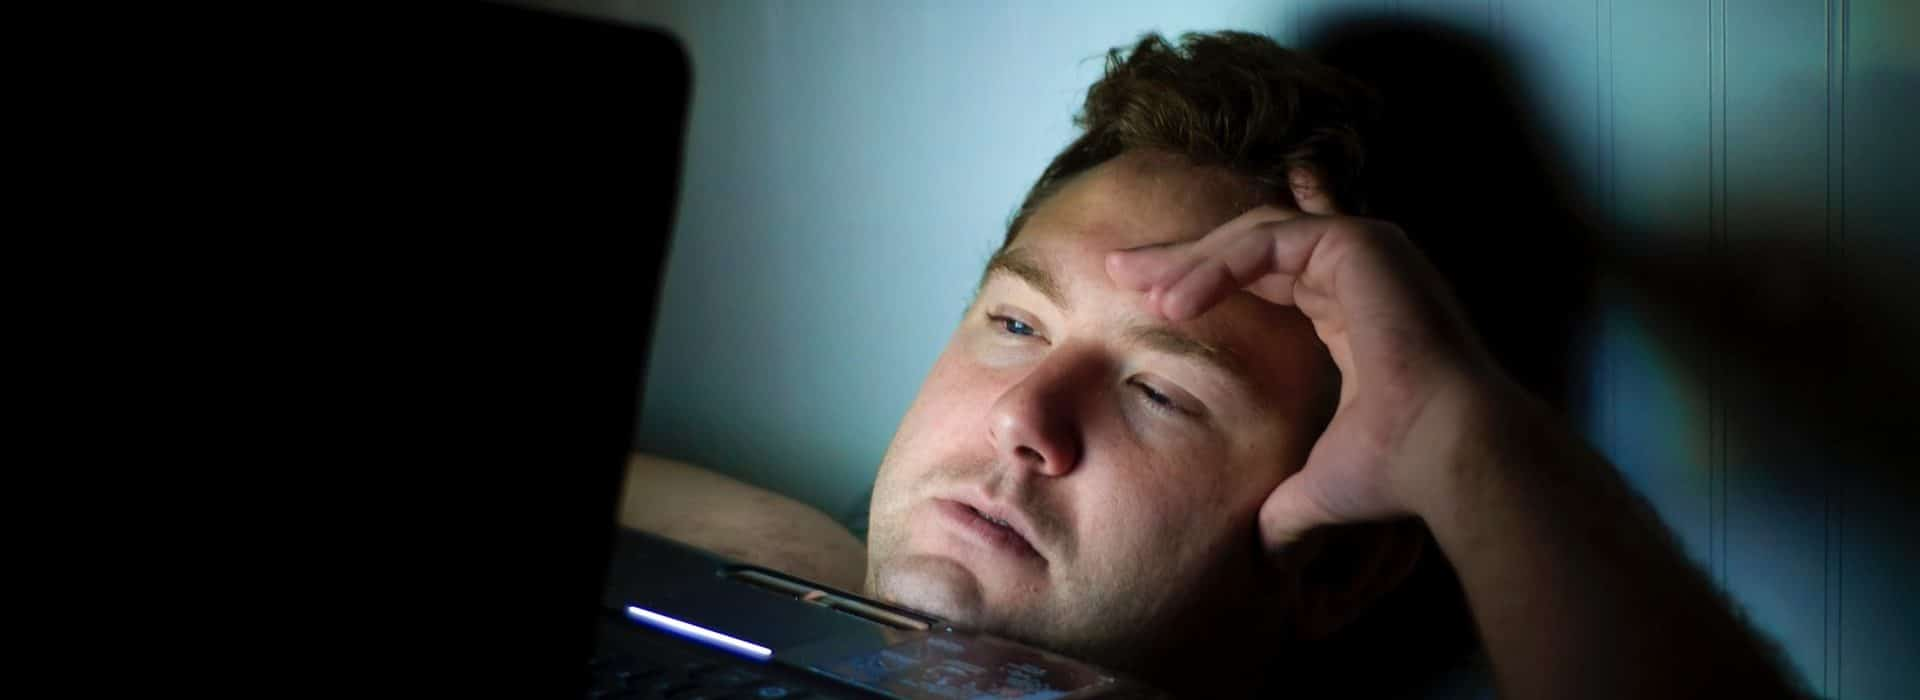 man awake on laptop in bed